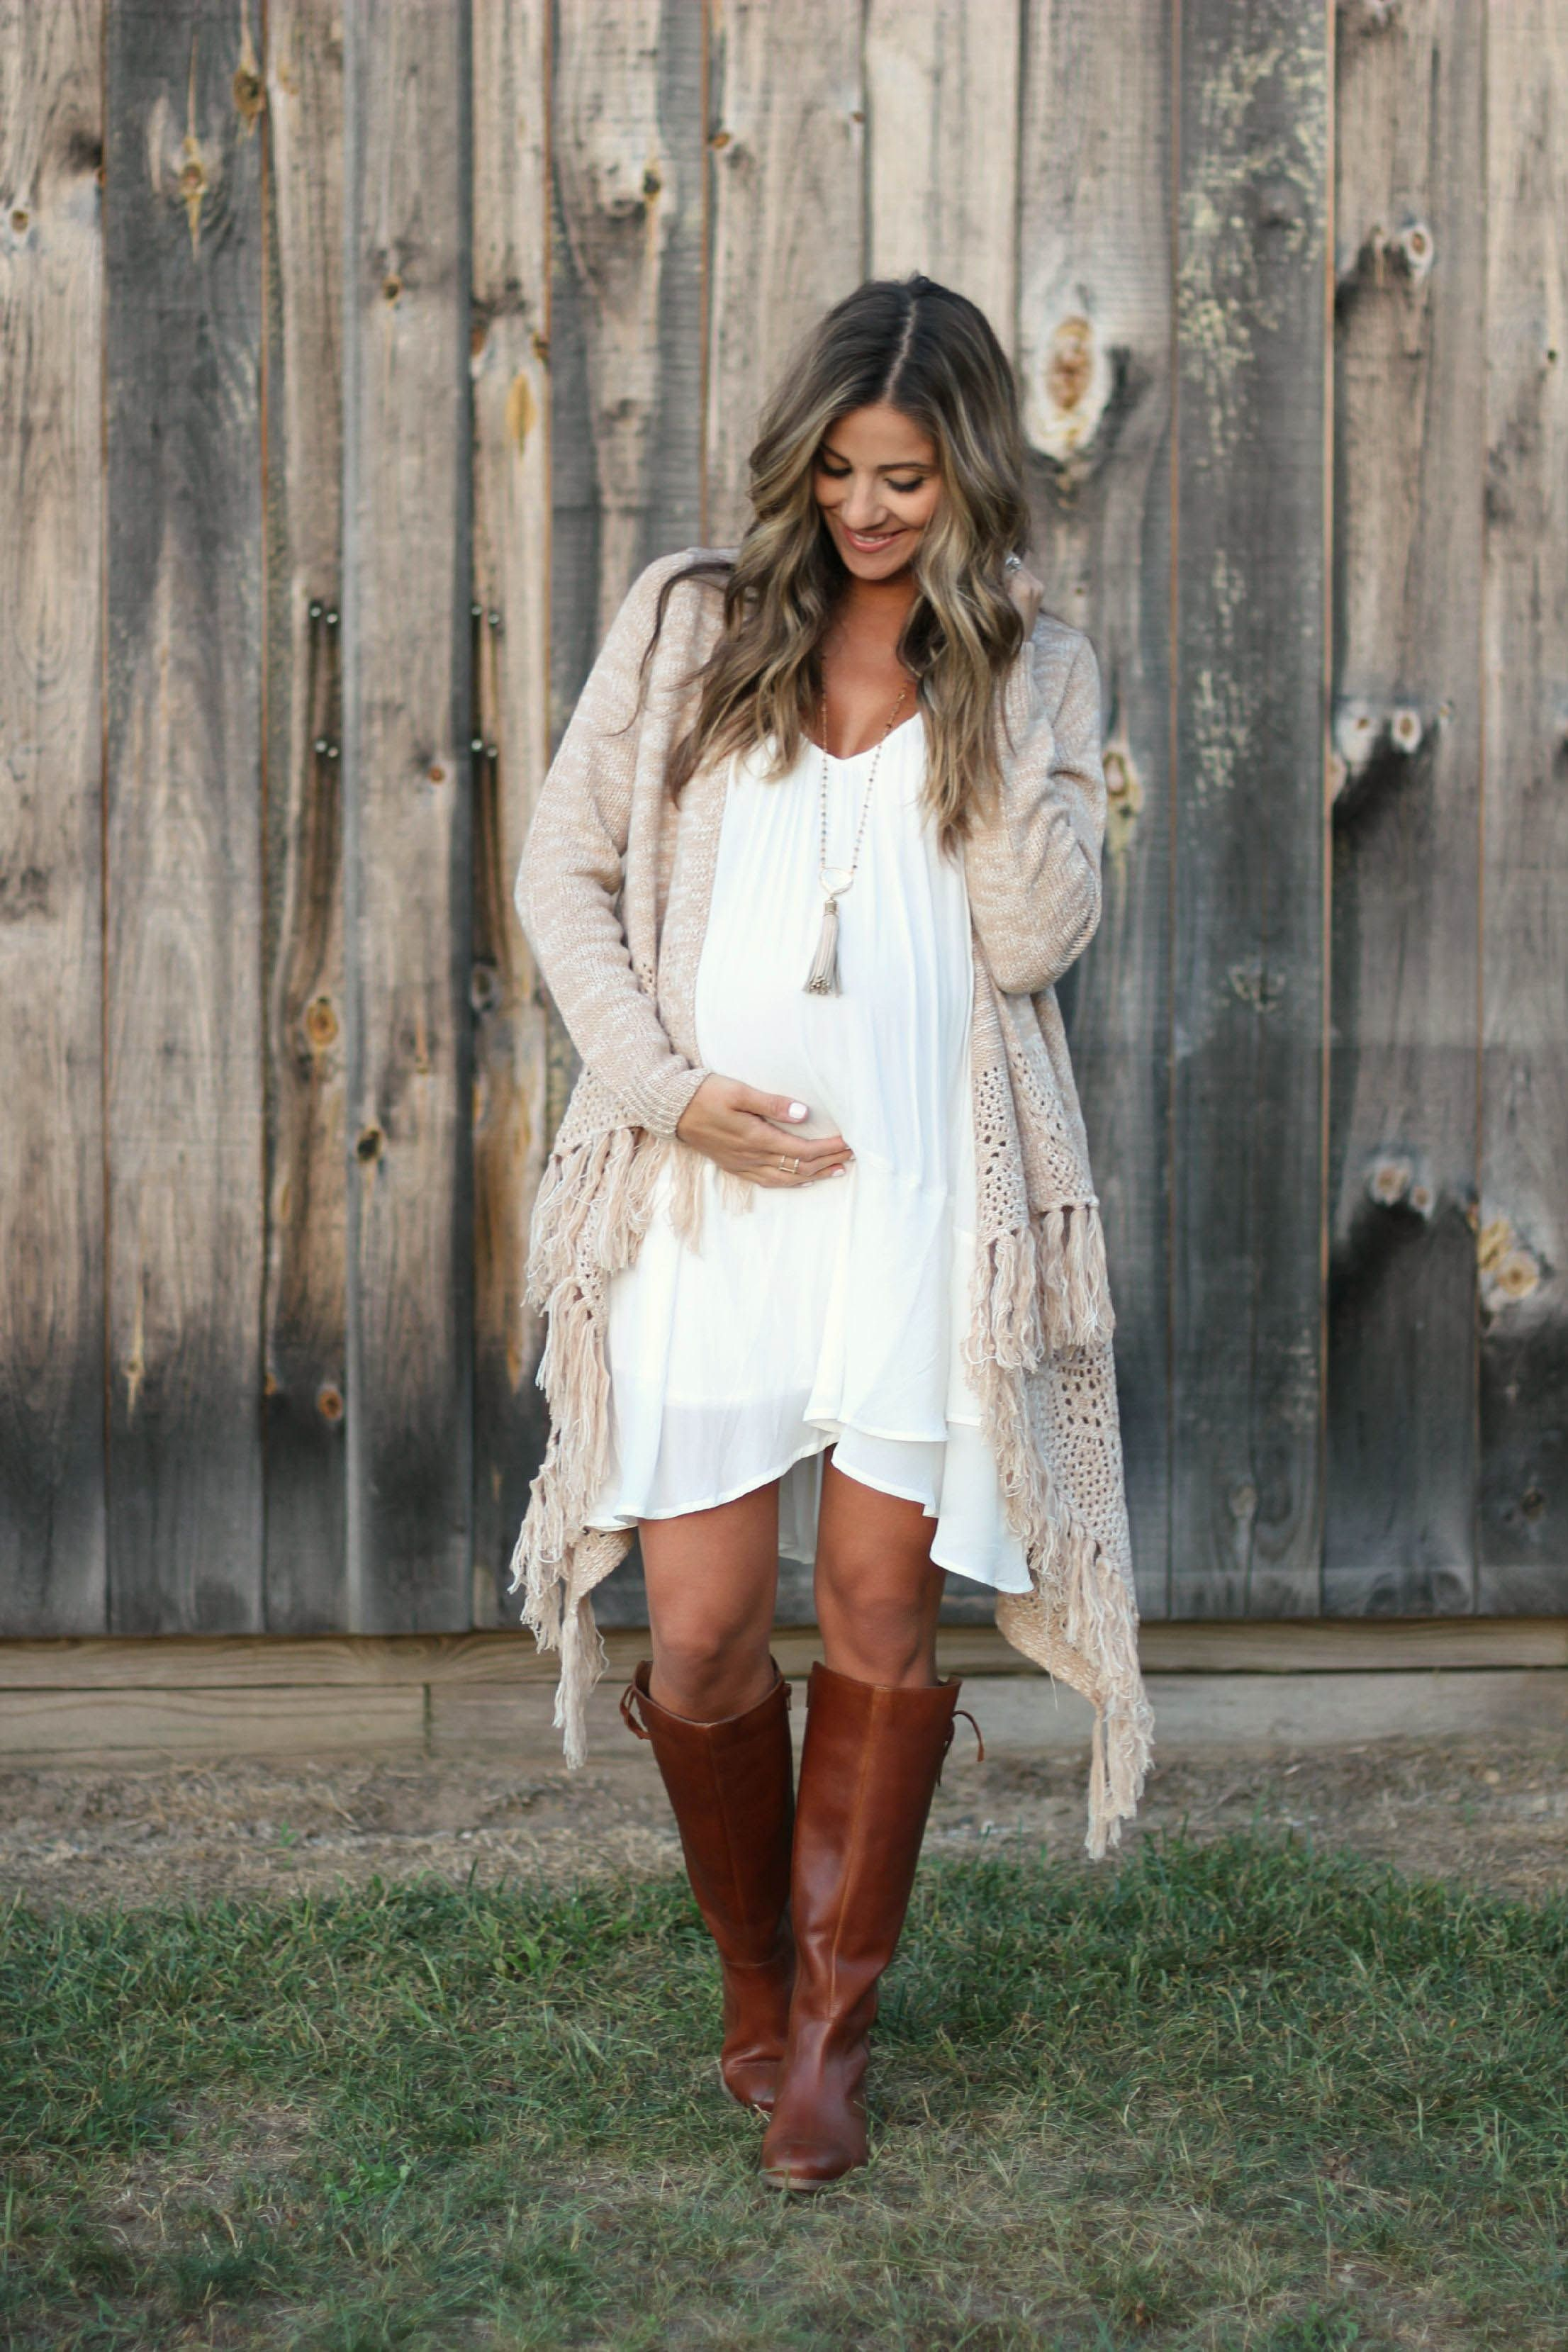 Style // Fall Riding Boots and Who Wore it Best? - Lauren McBride